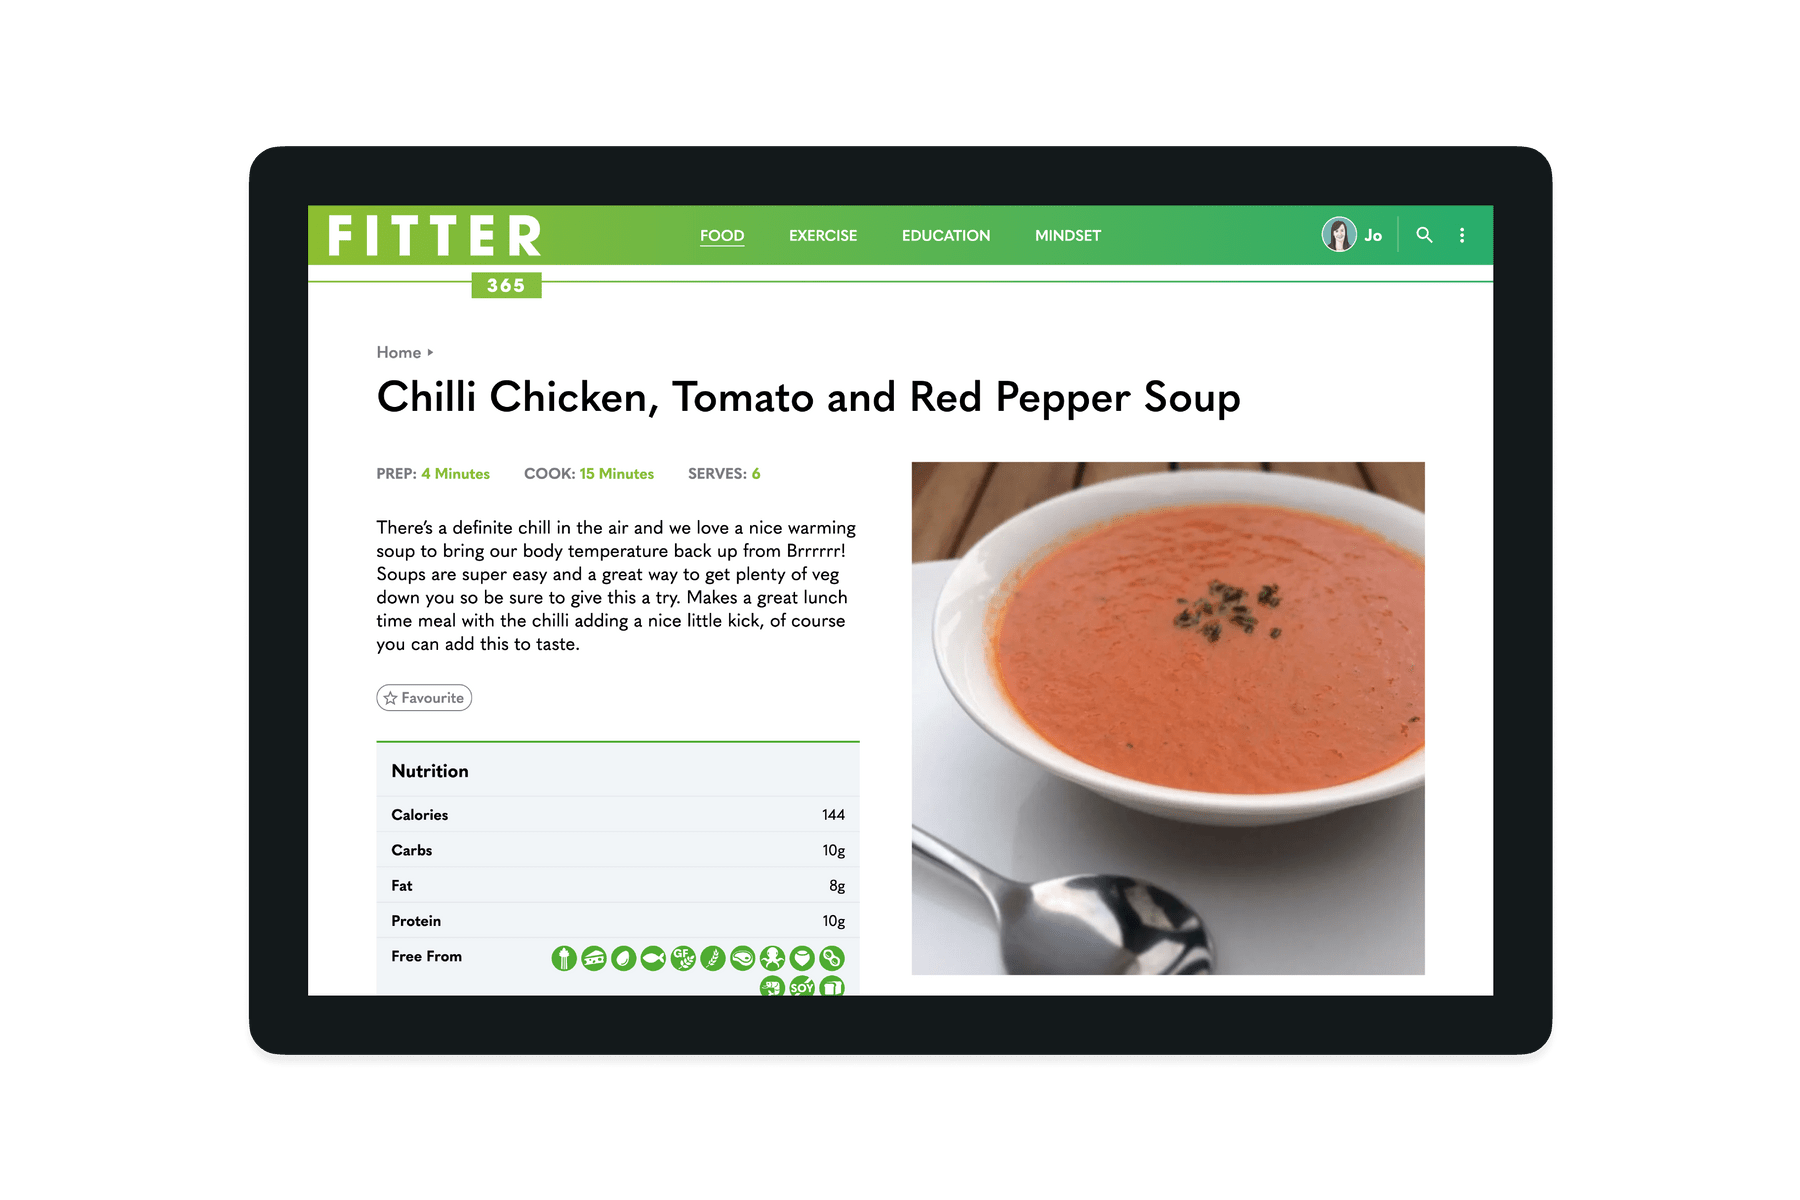 Tablet showing a recipe page of the Fitter 365 website